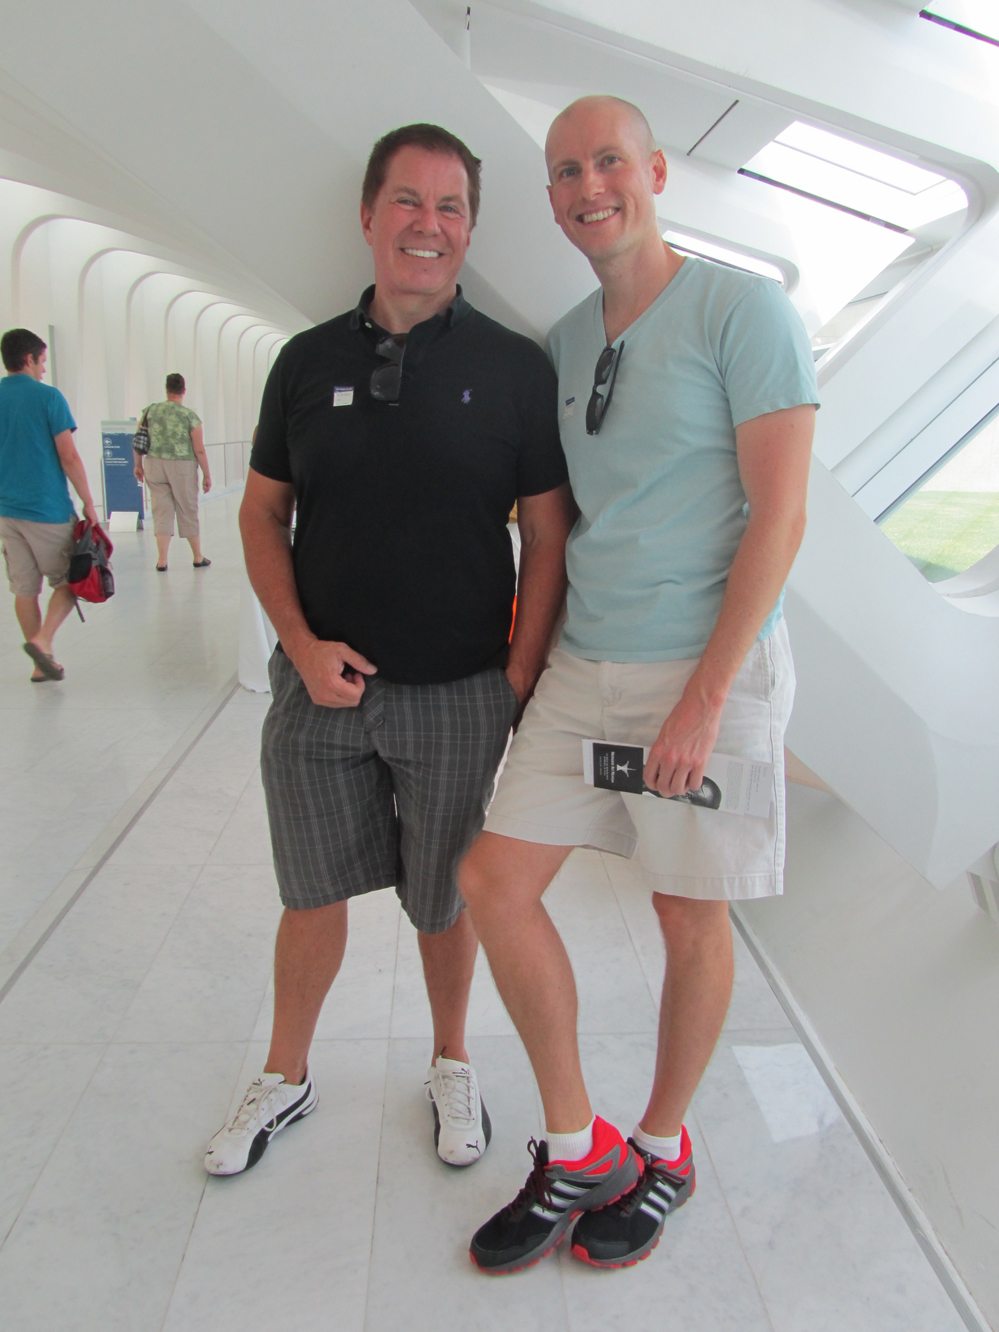 Jeffrey Anderson and Derek Sippel visit the Museum on August 30, 2013. Photo by the author.